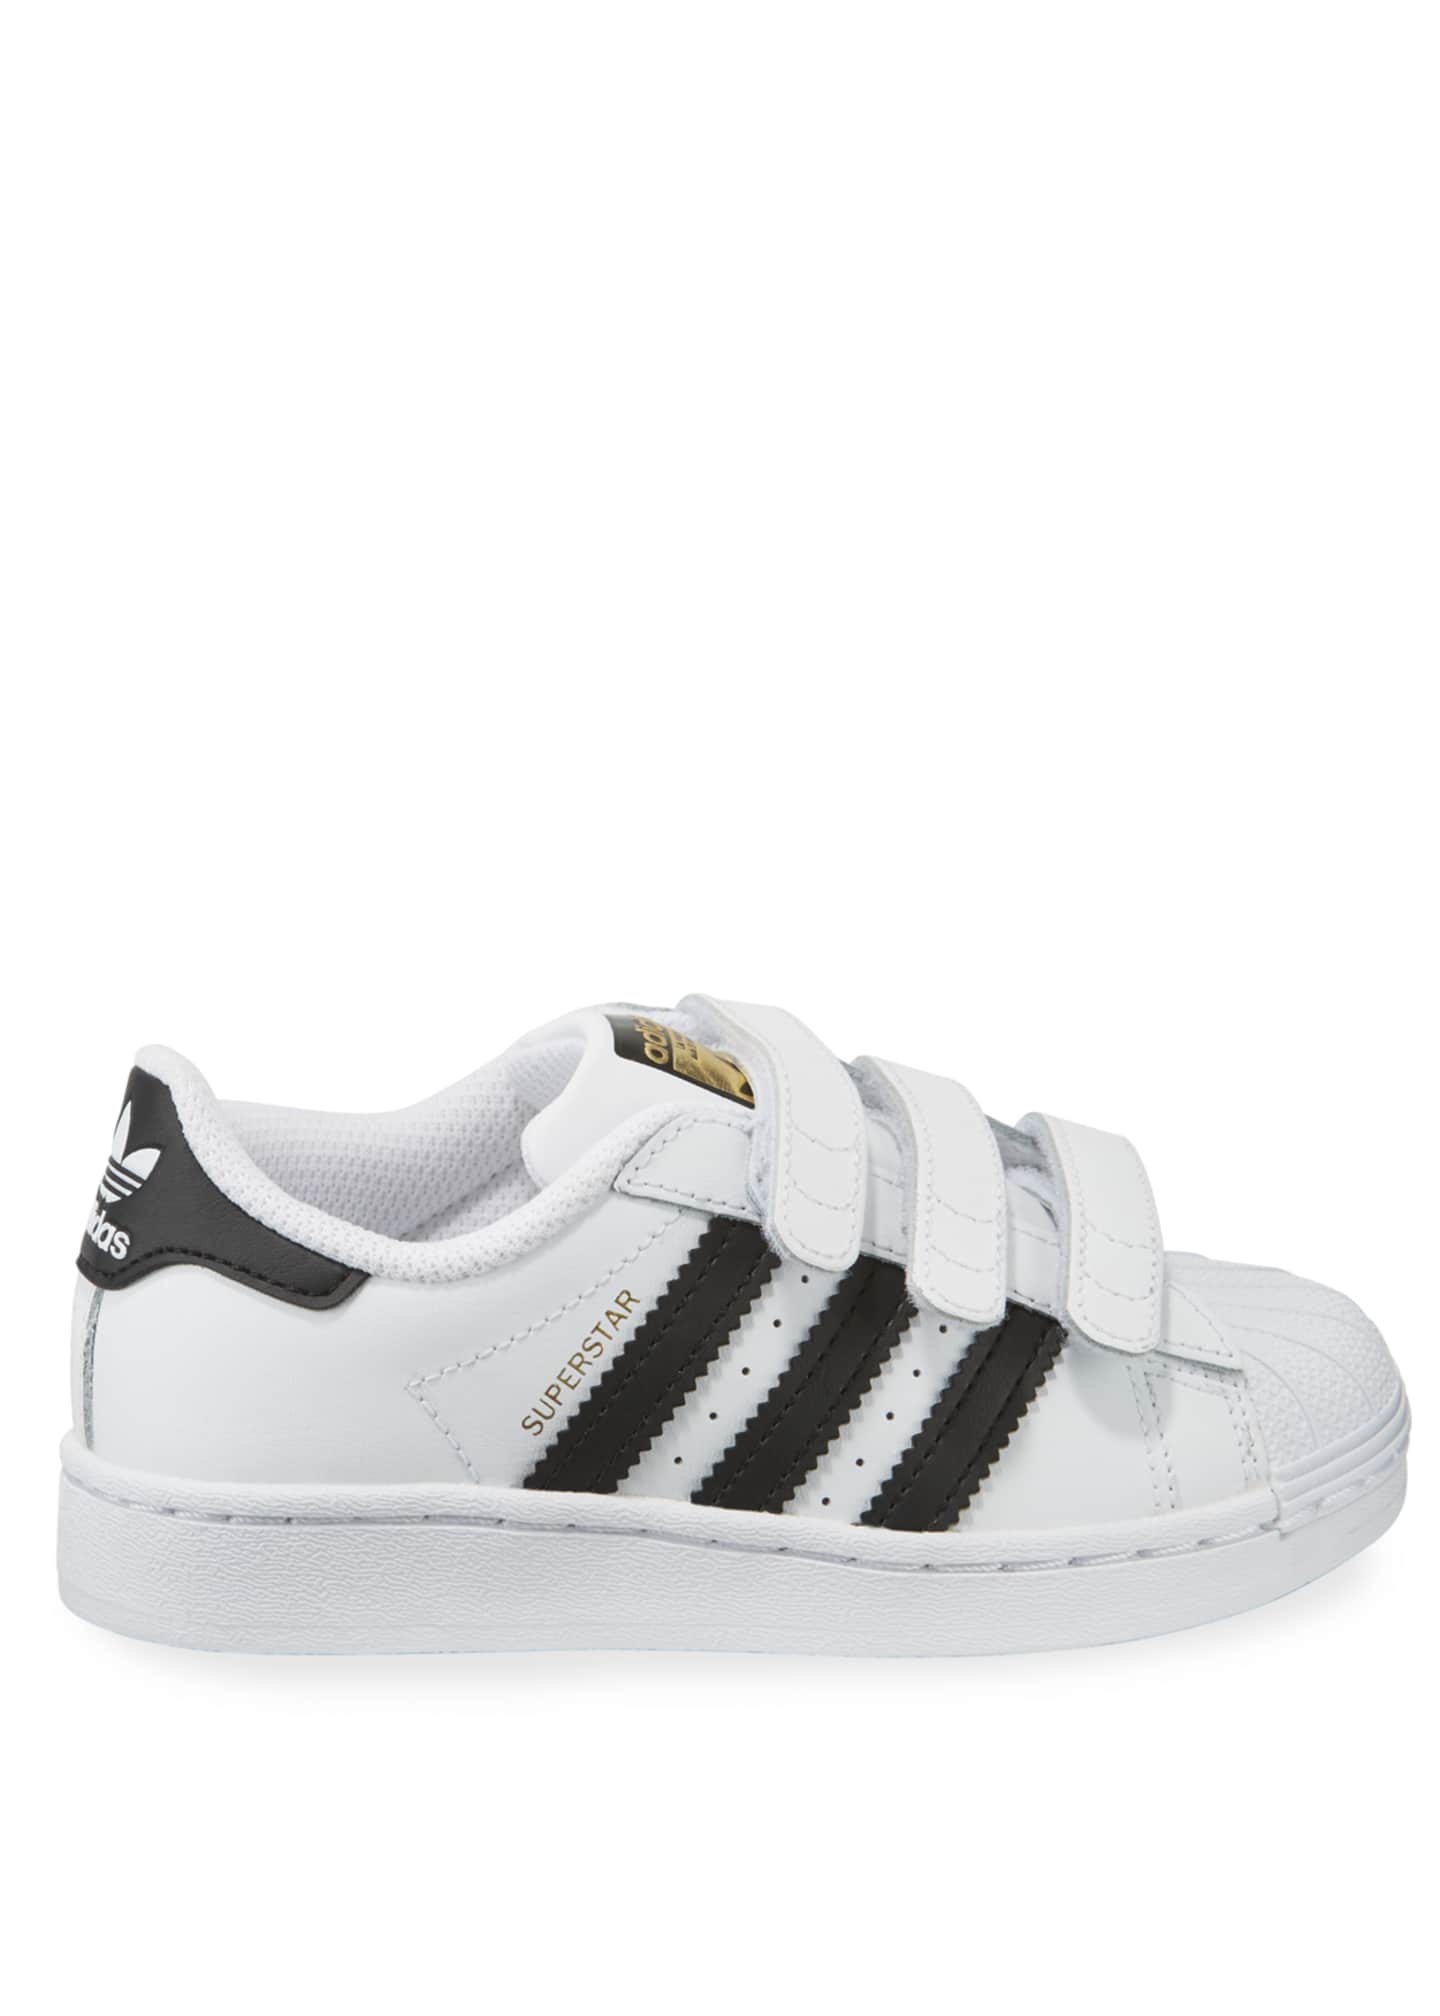 Image 2 of 4: Superstar Classic Sneakers, Toddler/Kids